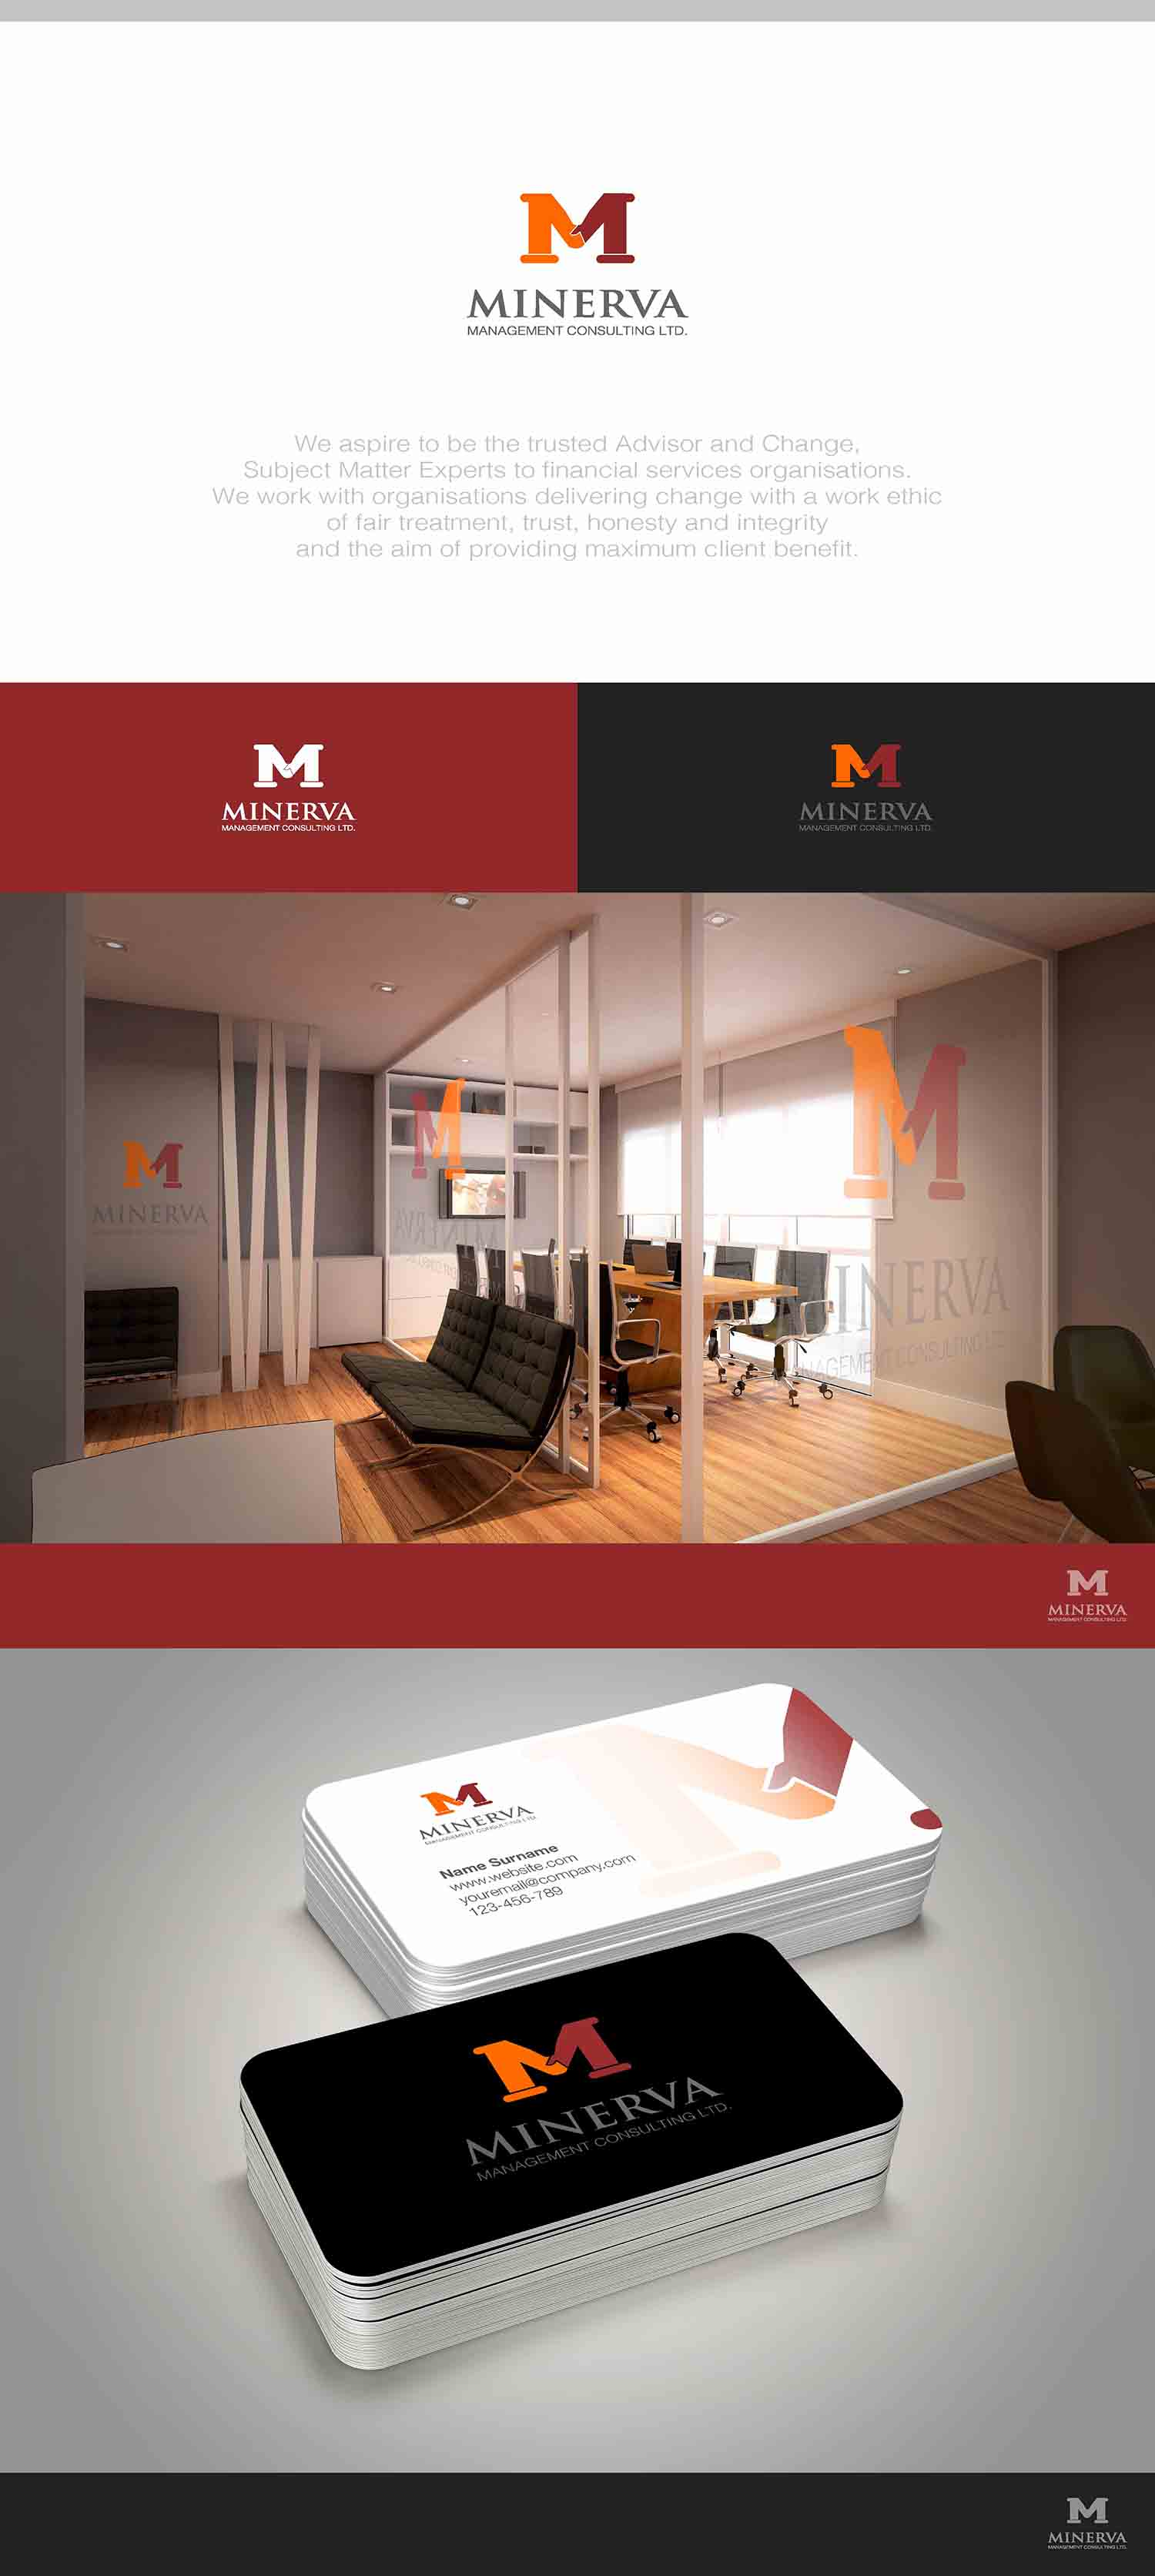 Logo Design by Creap Autagab - Entry No. 49 in the Logo Design Contest Logo Design for Minerva Management Consulting Limited.